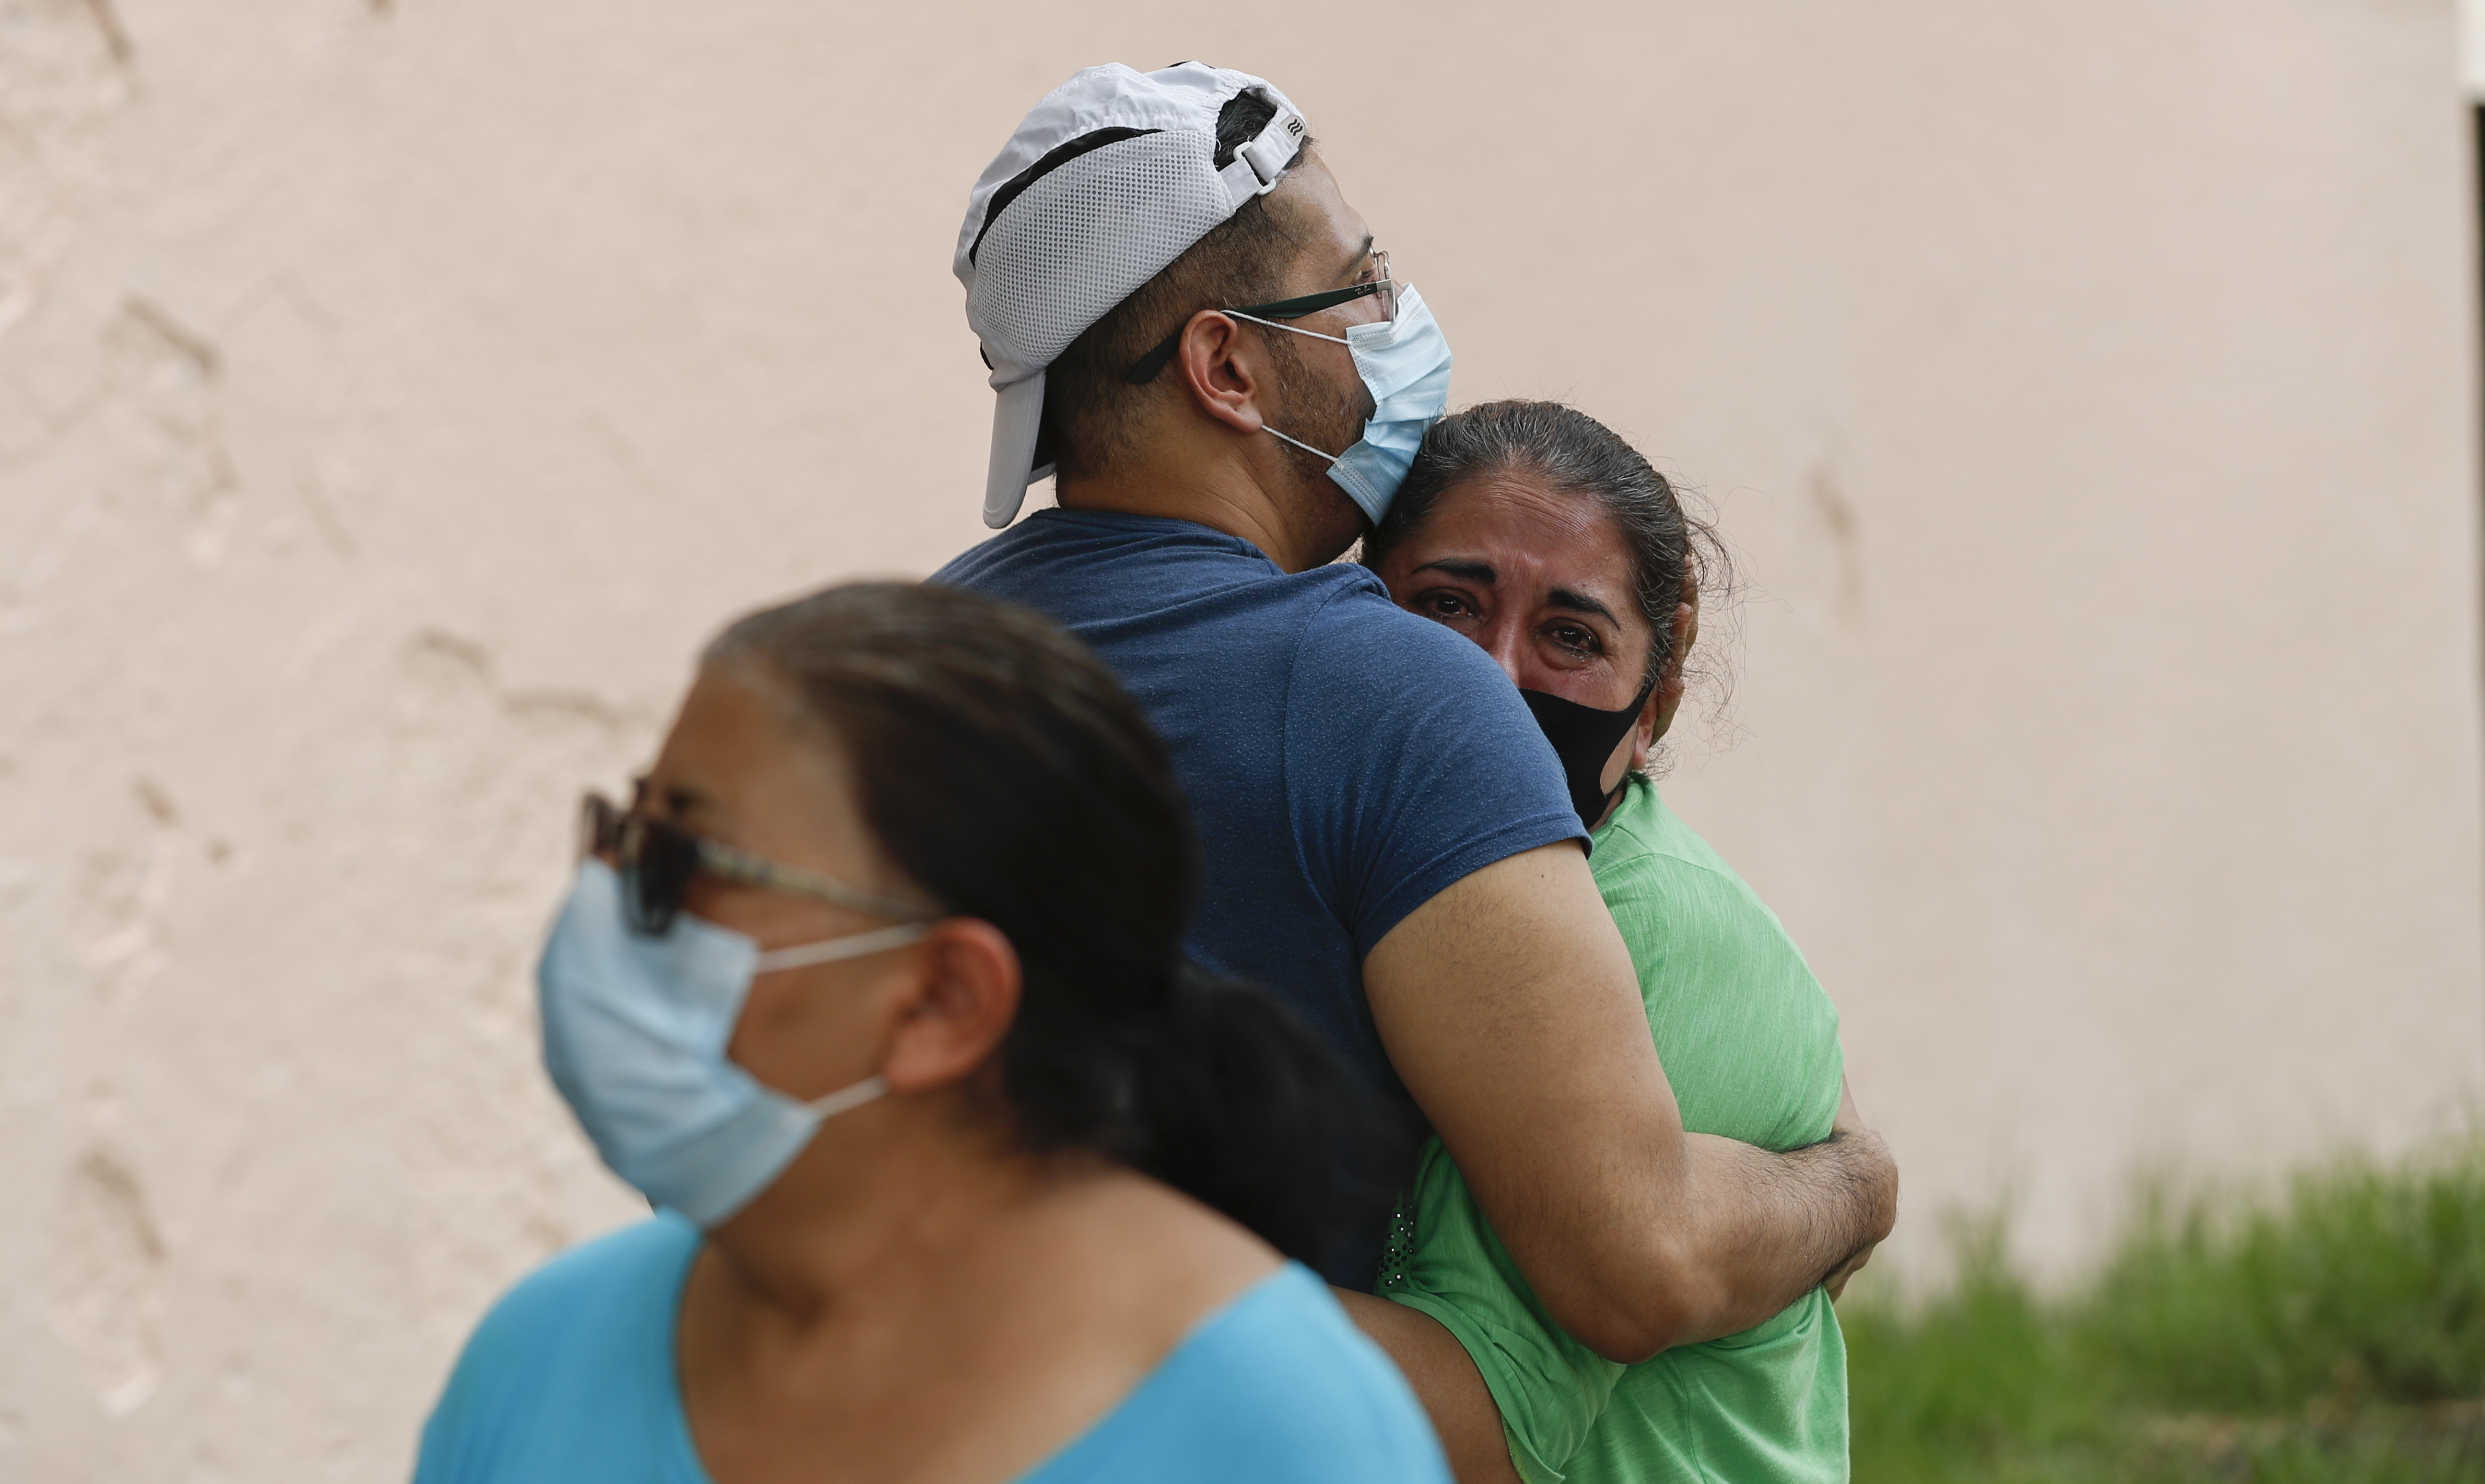 A couple embraces outside their home as they wait for the all-clear to return to their apartment, after an earthquake in Mexico City, Tuesday, June 23, 2020. The earthquake struck near the Huatulco resort in southern Mexico on Tuesday morning, swayed buildings in Mexico City and sent thousands fleeing into the streets. (AP Photo/Eduardo Verdugo)